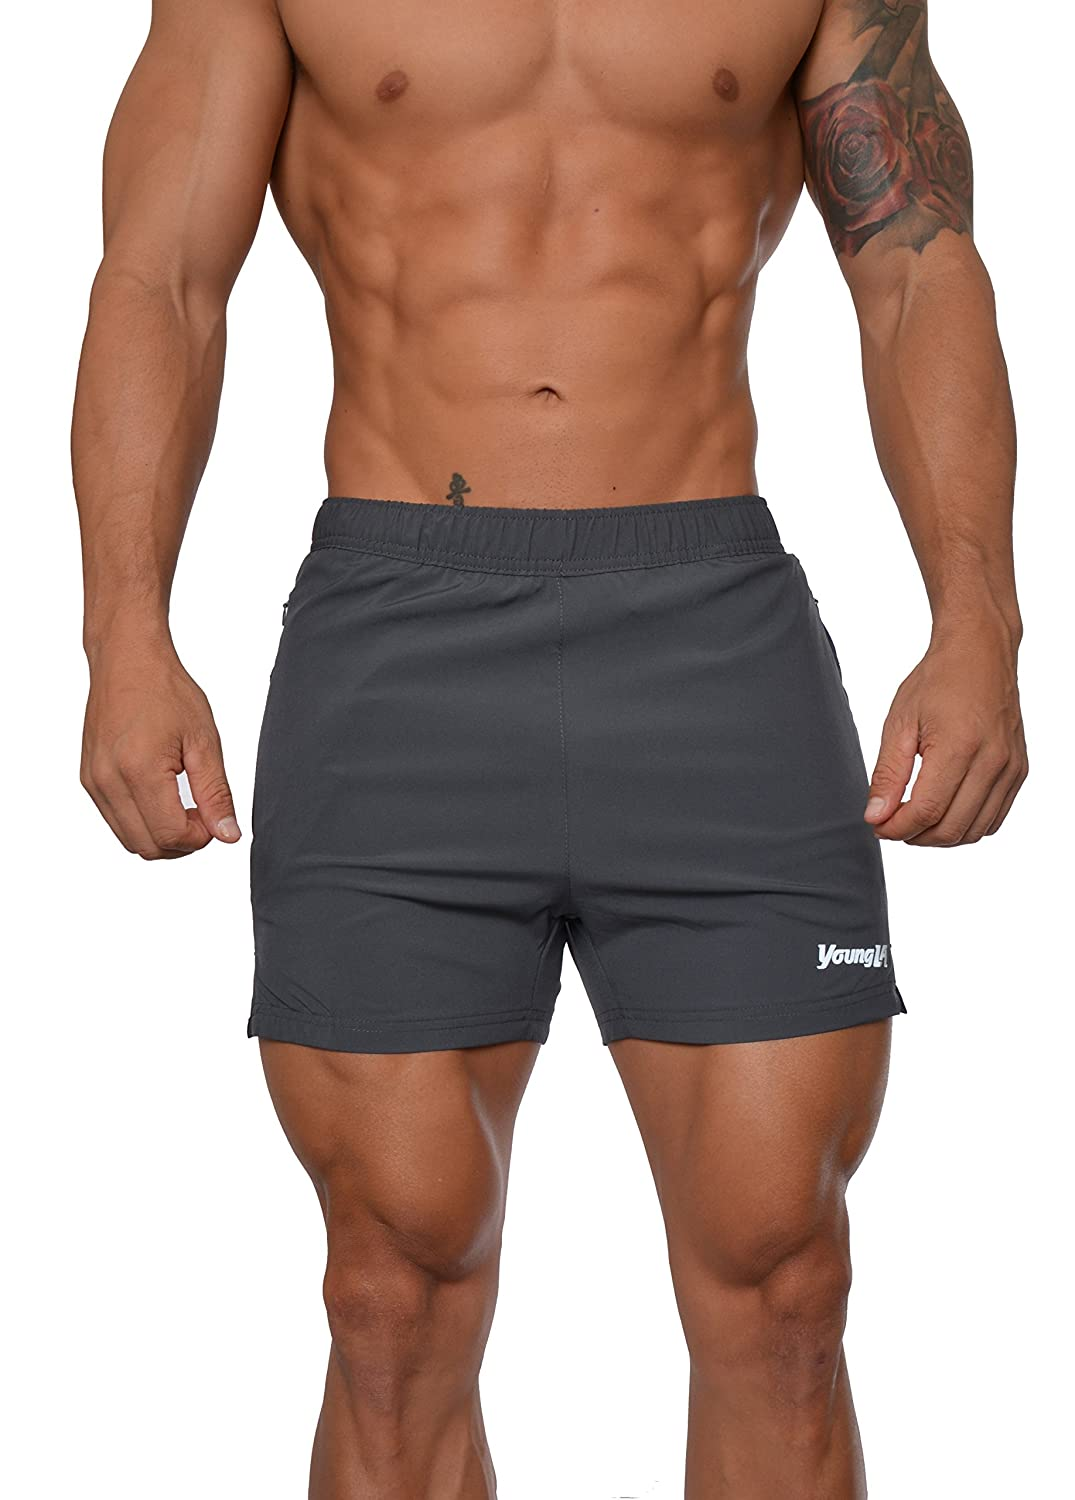 961e8659d6 The shorts dry very quick as they are made with a high quality moisture  wicking material. 2 Front pockets to store your essentials or to put your  hands to ...